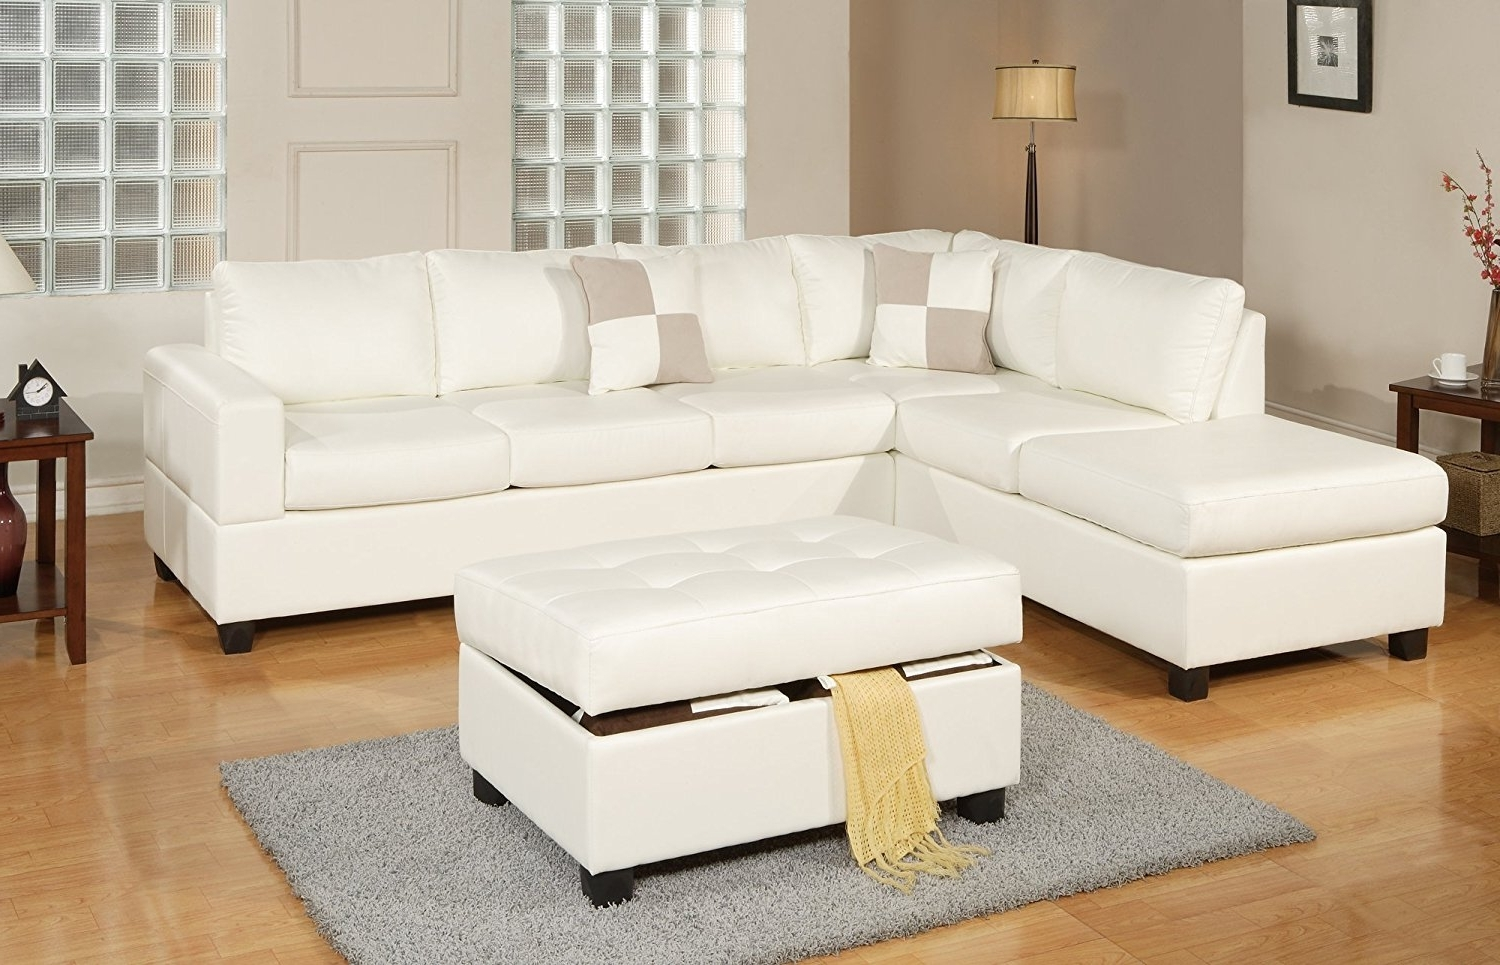 Newest White Sectional Sofas With Amazon: Bobkona Soft Touch Reversible Bonded Leather Match (View 2 of 15)